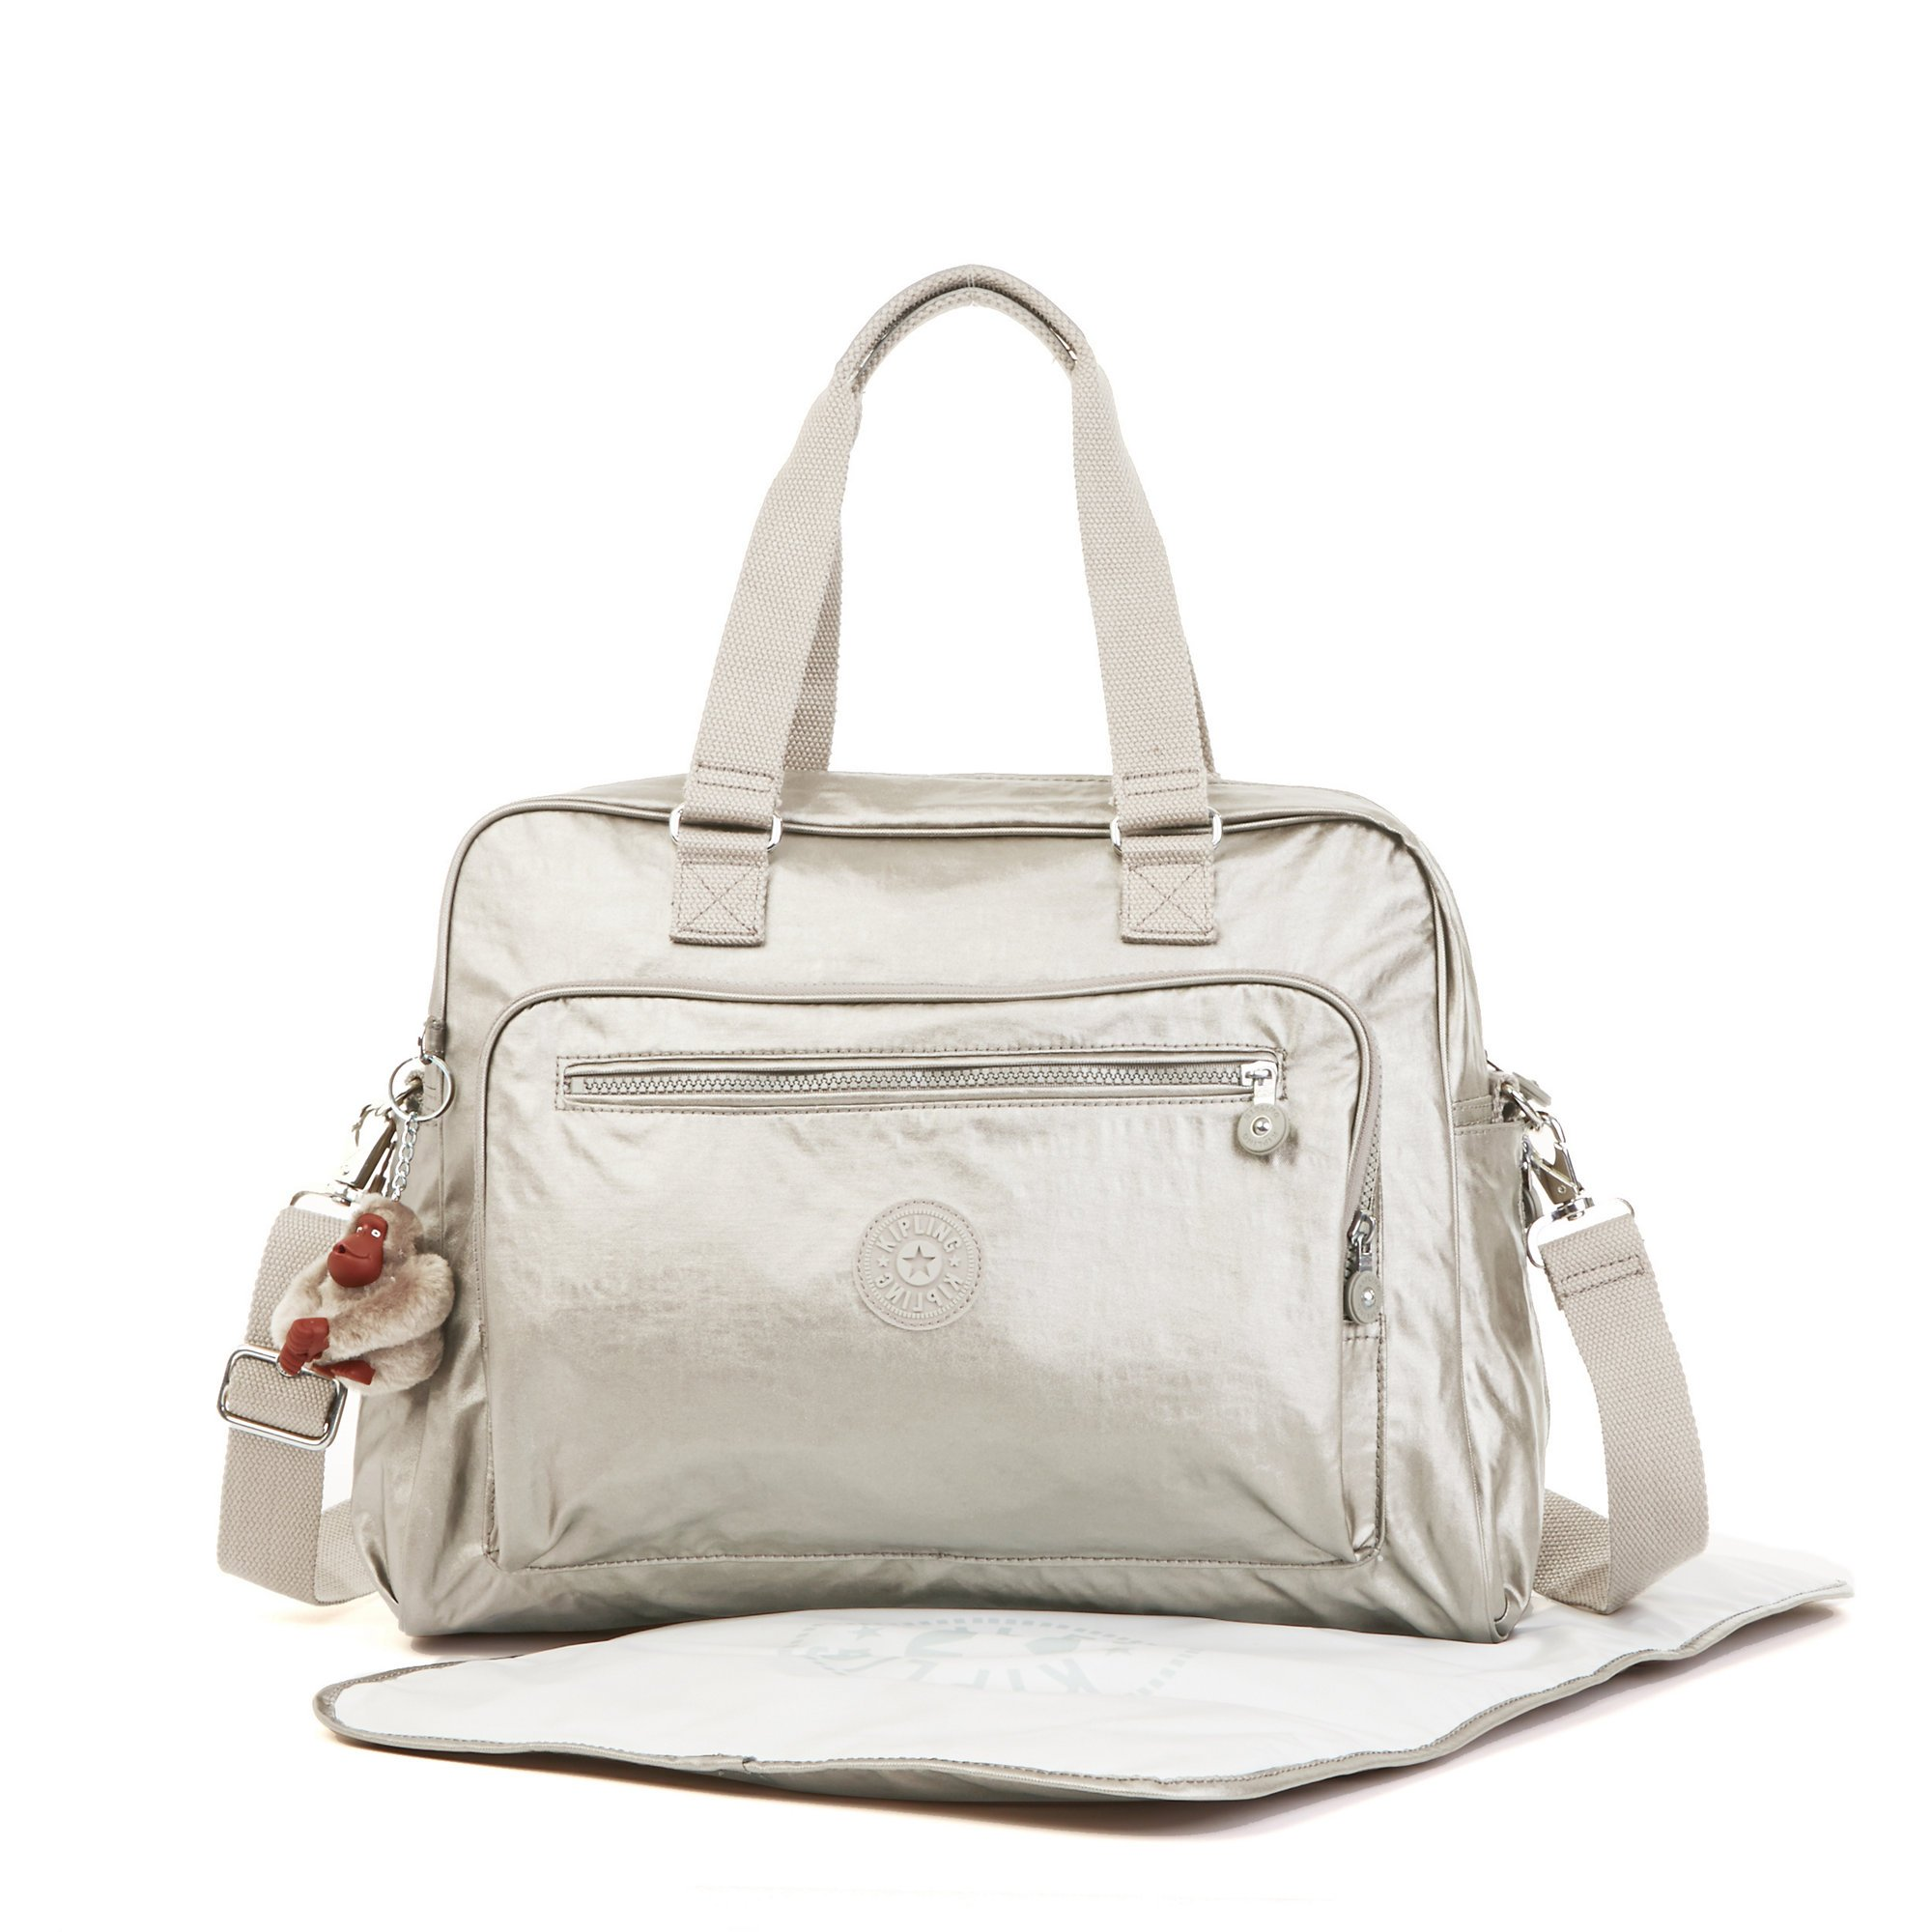 Kipling Alanna Baby Bag with multiple compartments, Cloud Grey Metallic